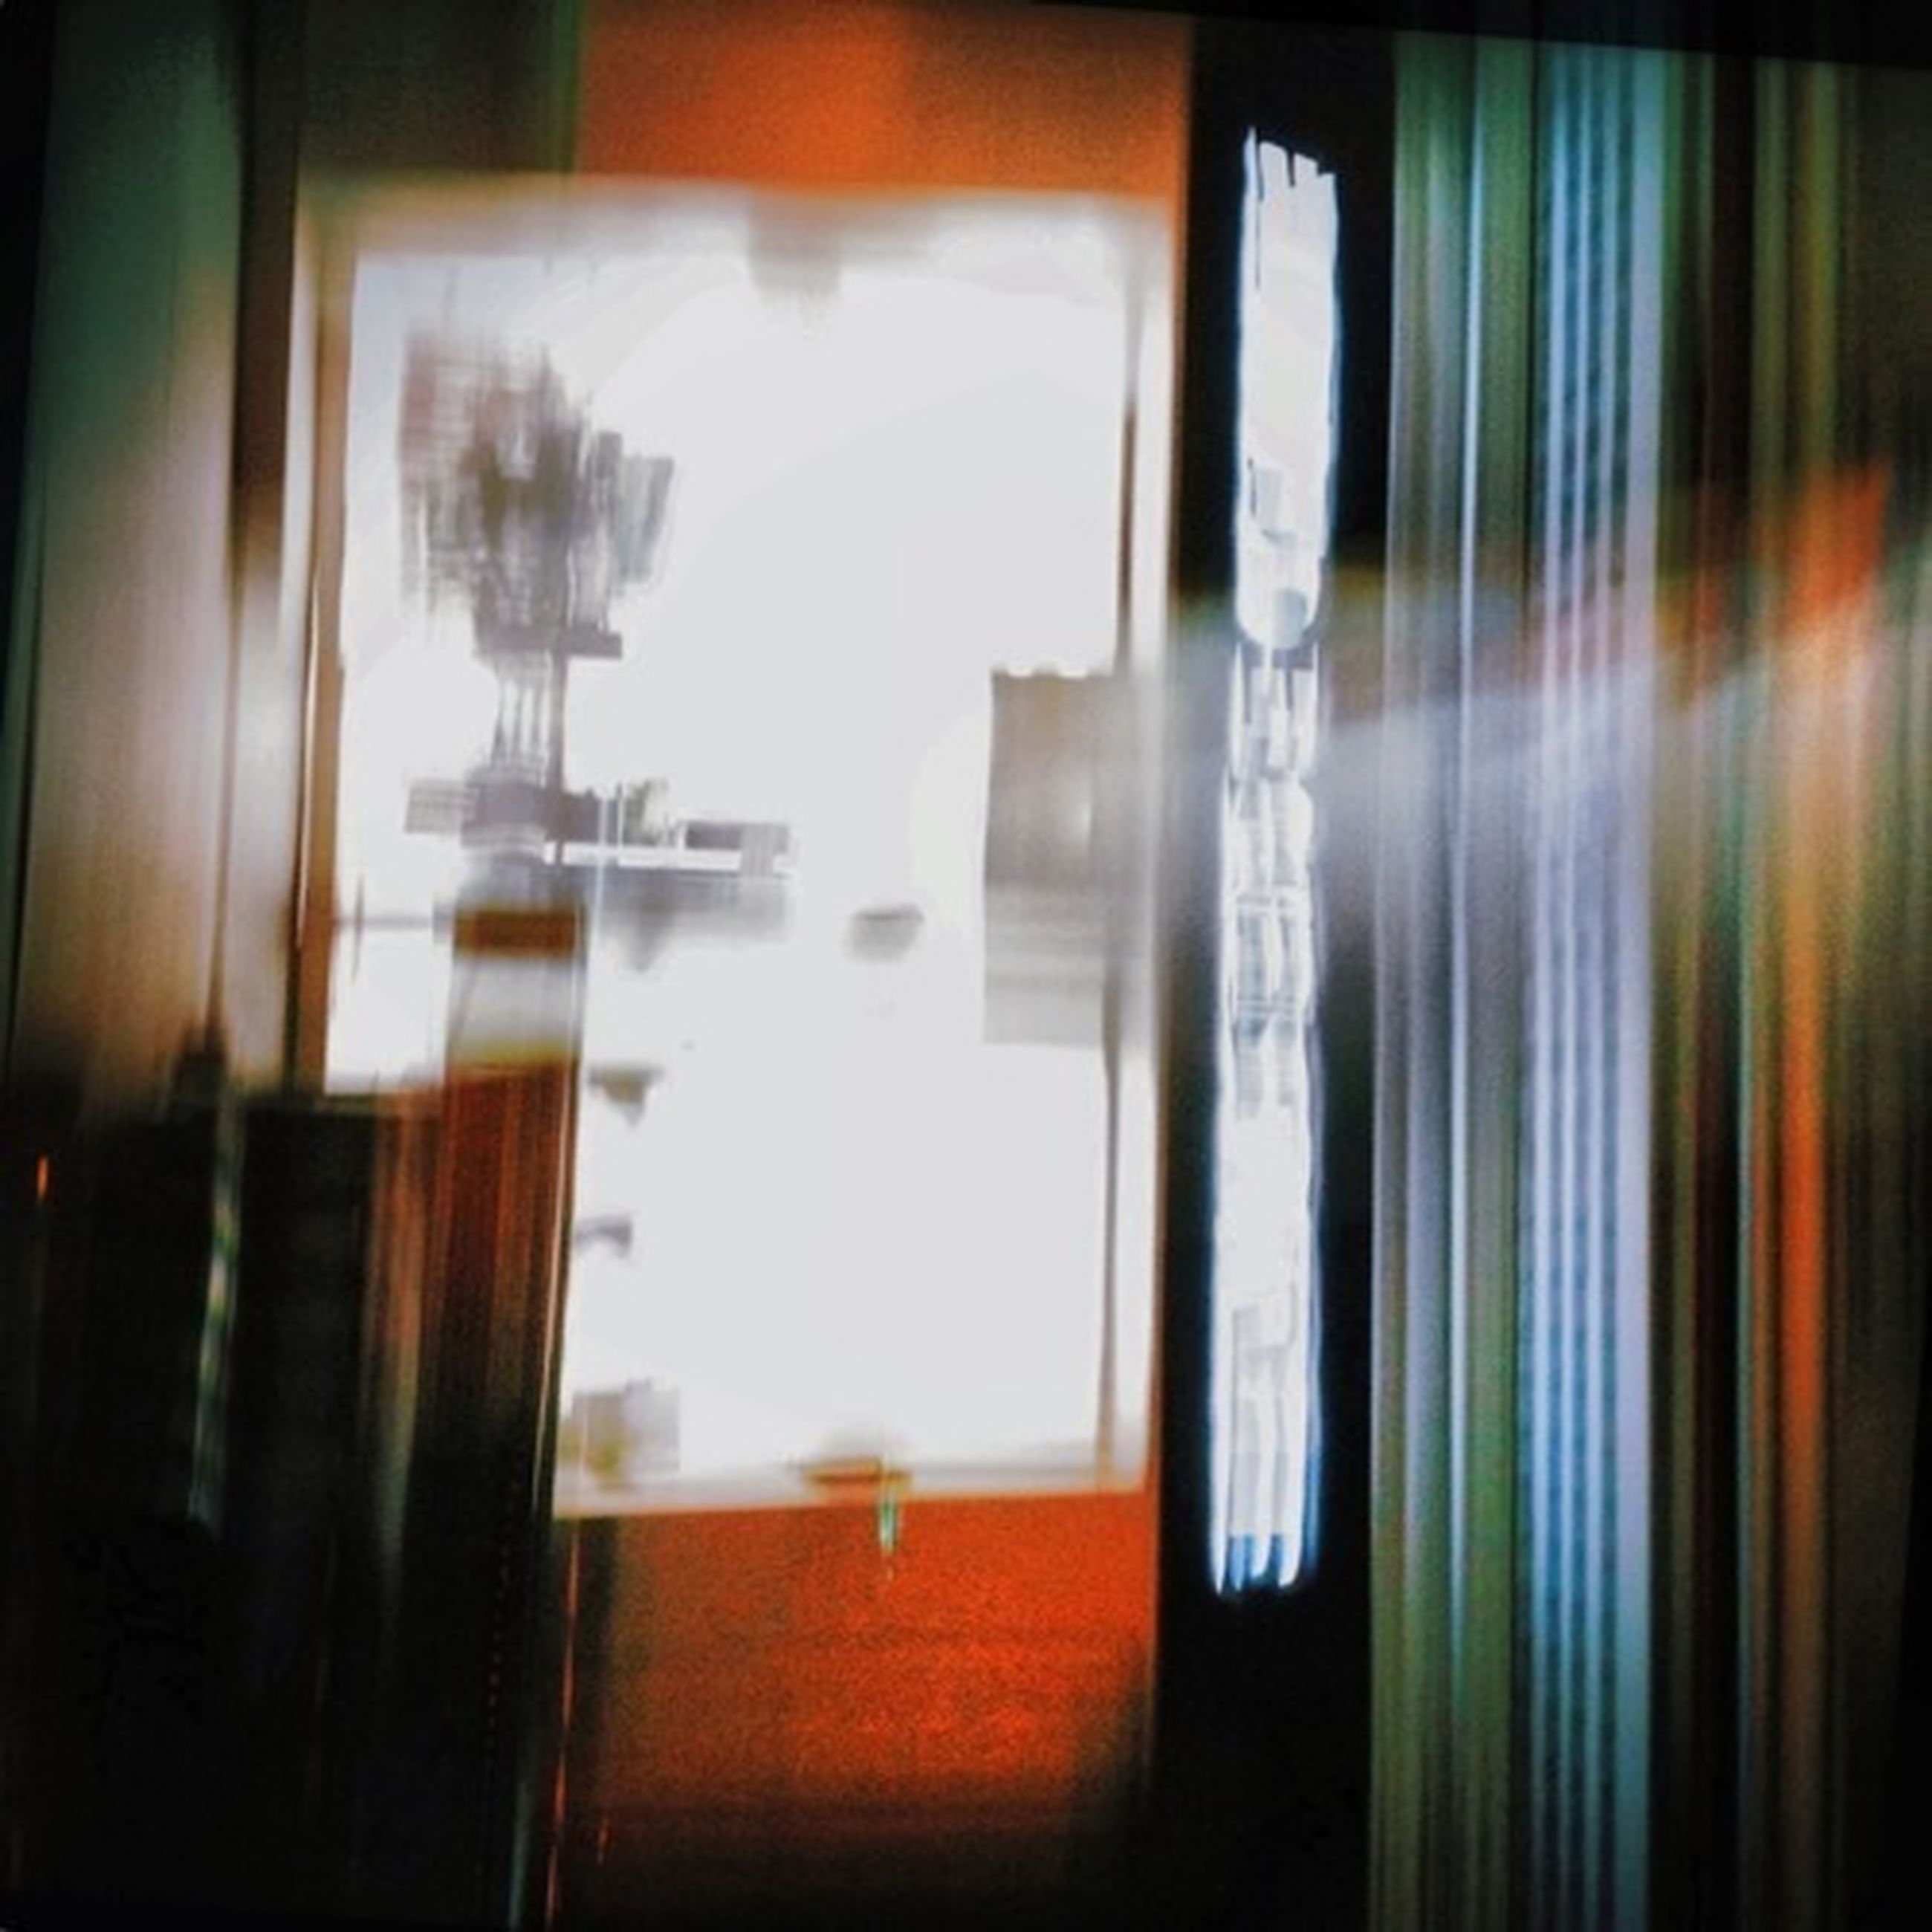 indoors, window, glass - material, transparent, curtain, home interior, reflection, glass, door, no people, looking through window, day, open, house, close-up, domestic room, absence, closed, empty, sunlight